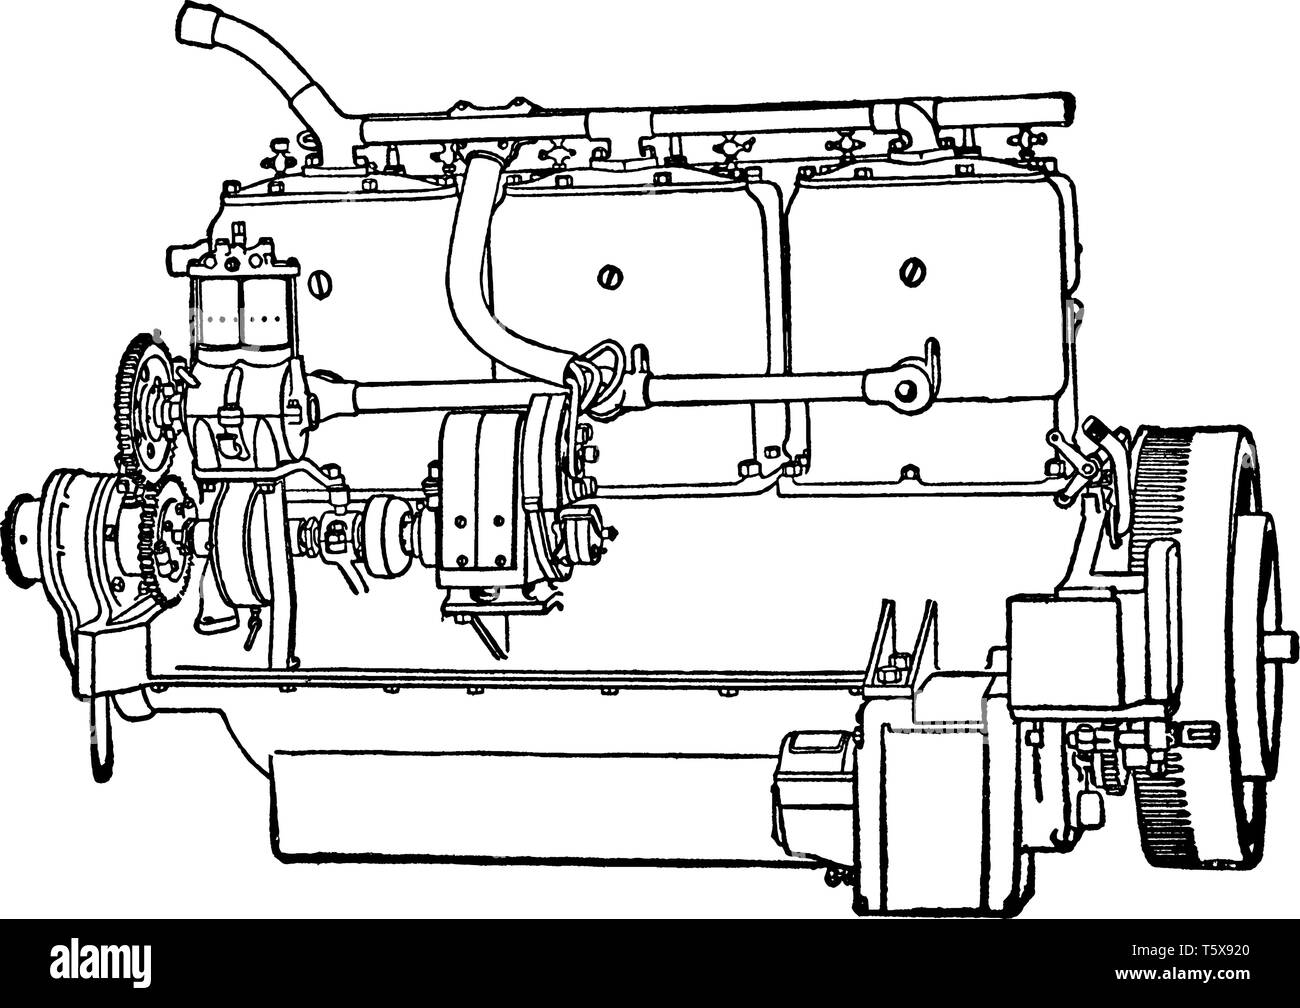 hight resolution of building an automobile step 11 is motor starts the engine by turning the fly wheel vintage line drawing or engraving illustration